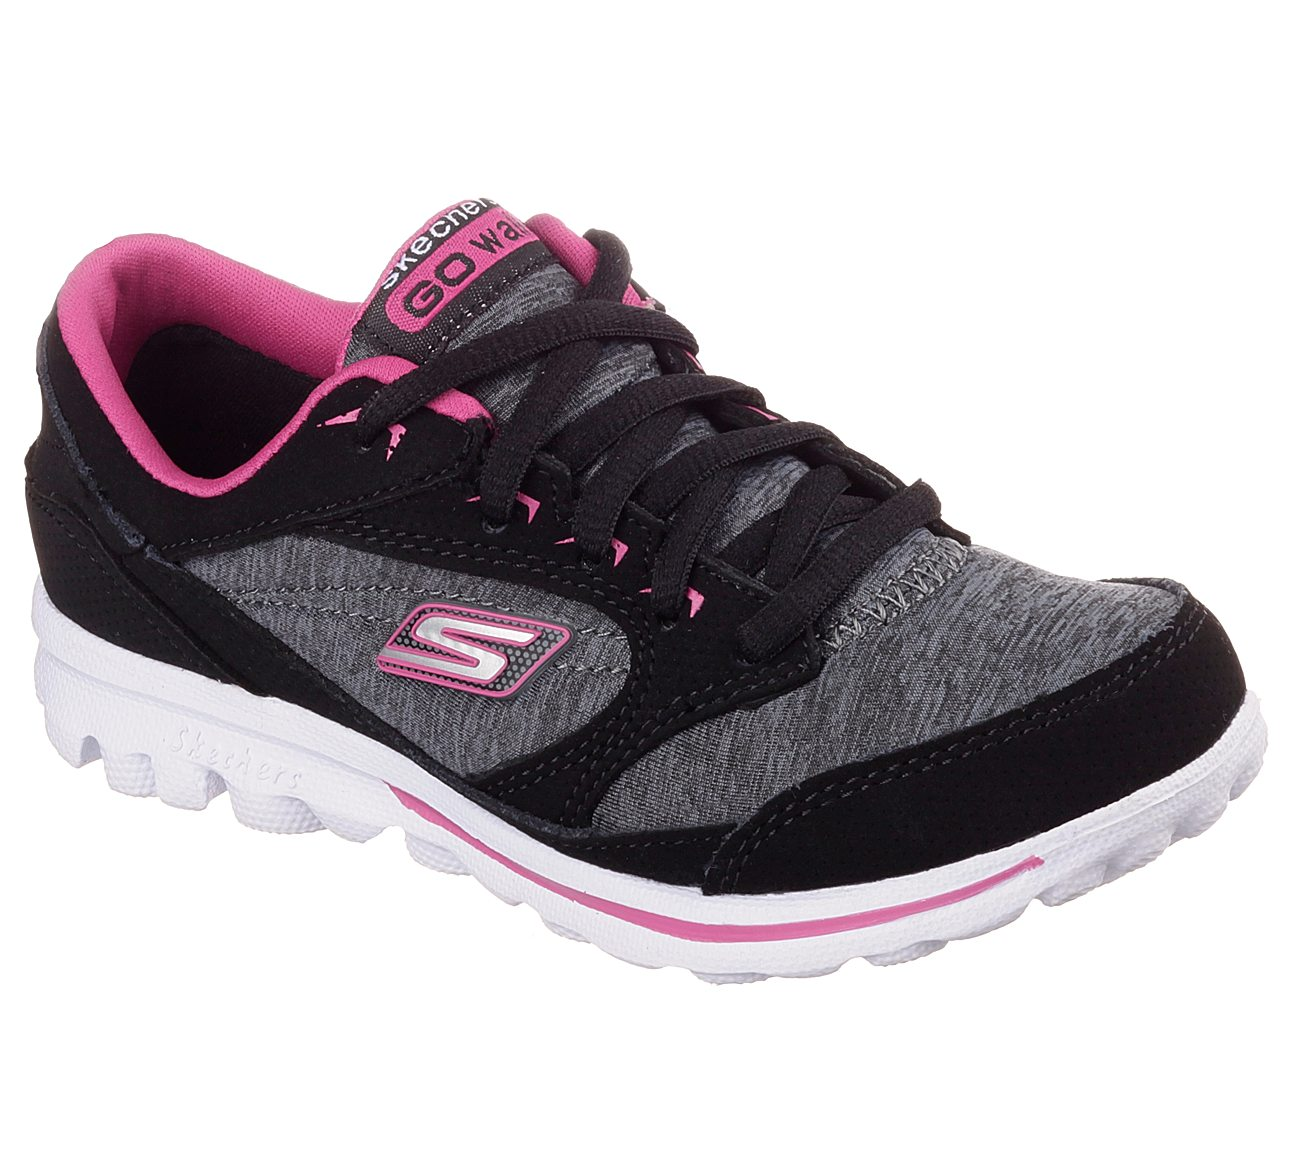 New Skechers Go Walk Synthetic And Fabric Black Trainers for Women Online